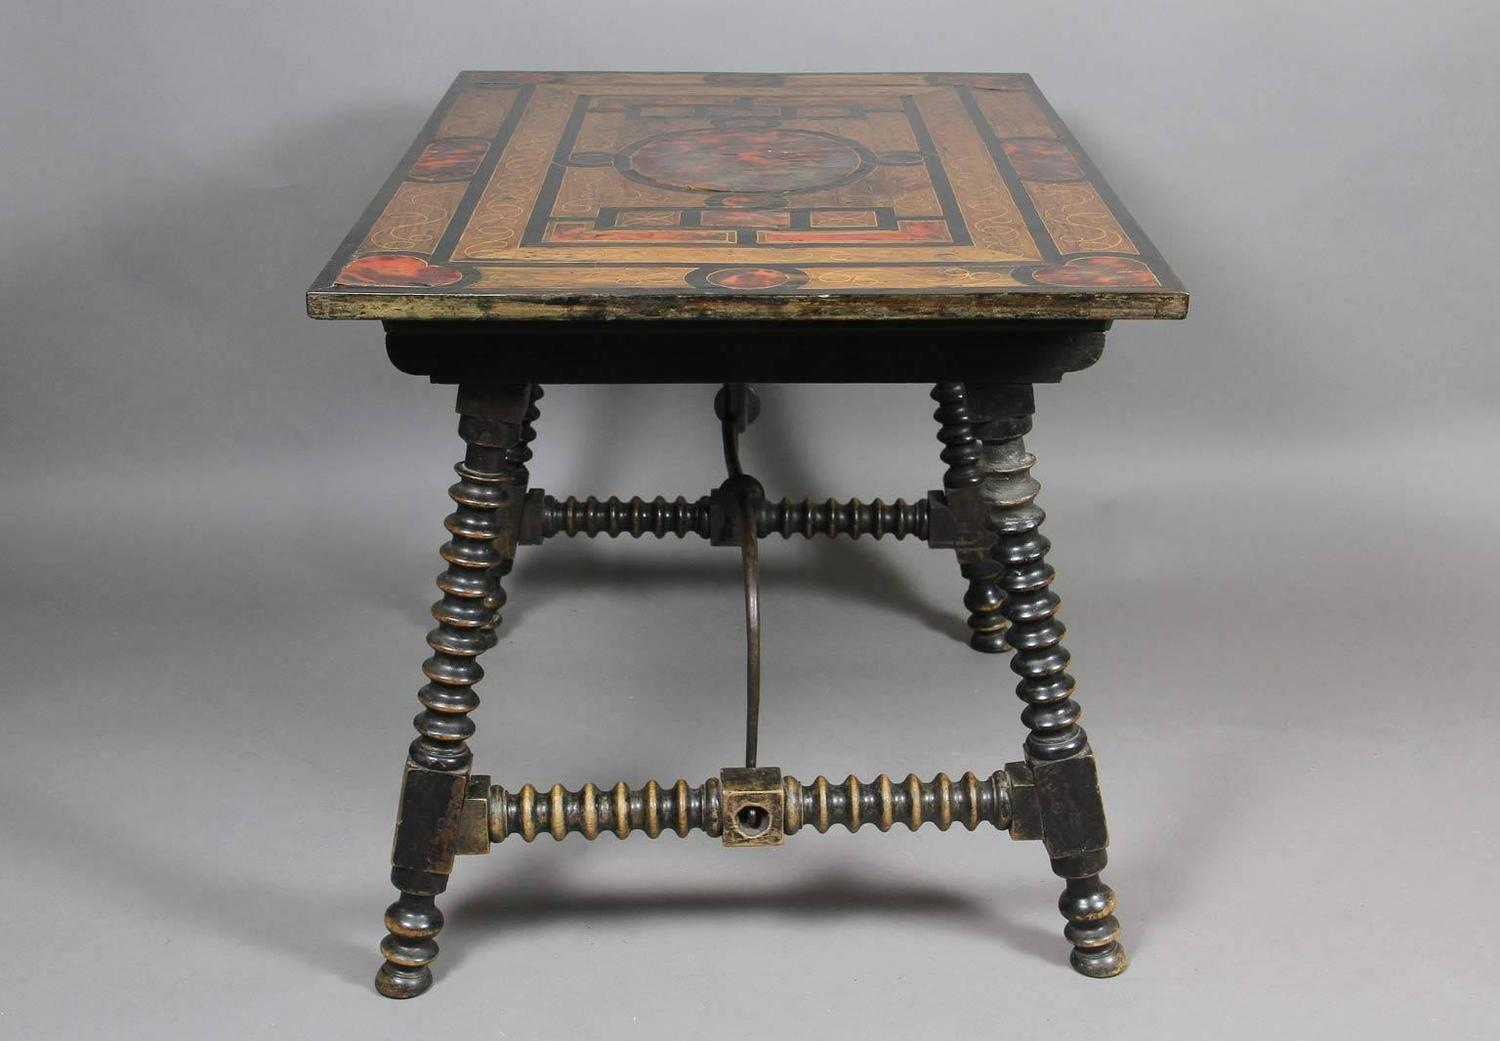 Spanish Baroque Rosewood And Faux Tortoiseshell Coffee Table Image 2